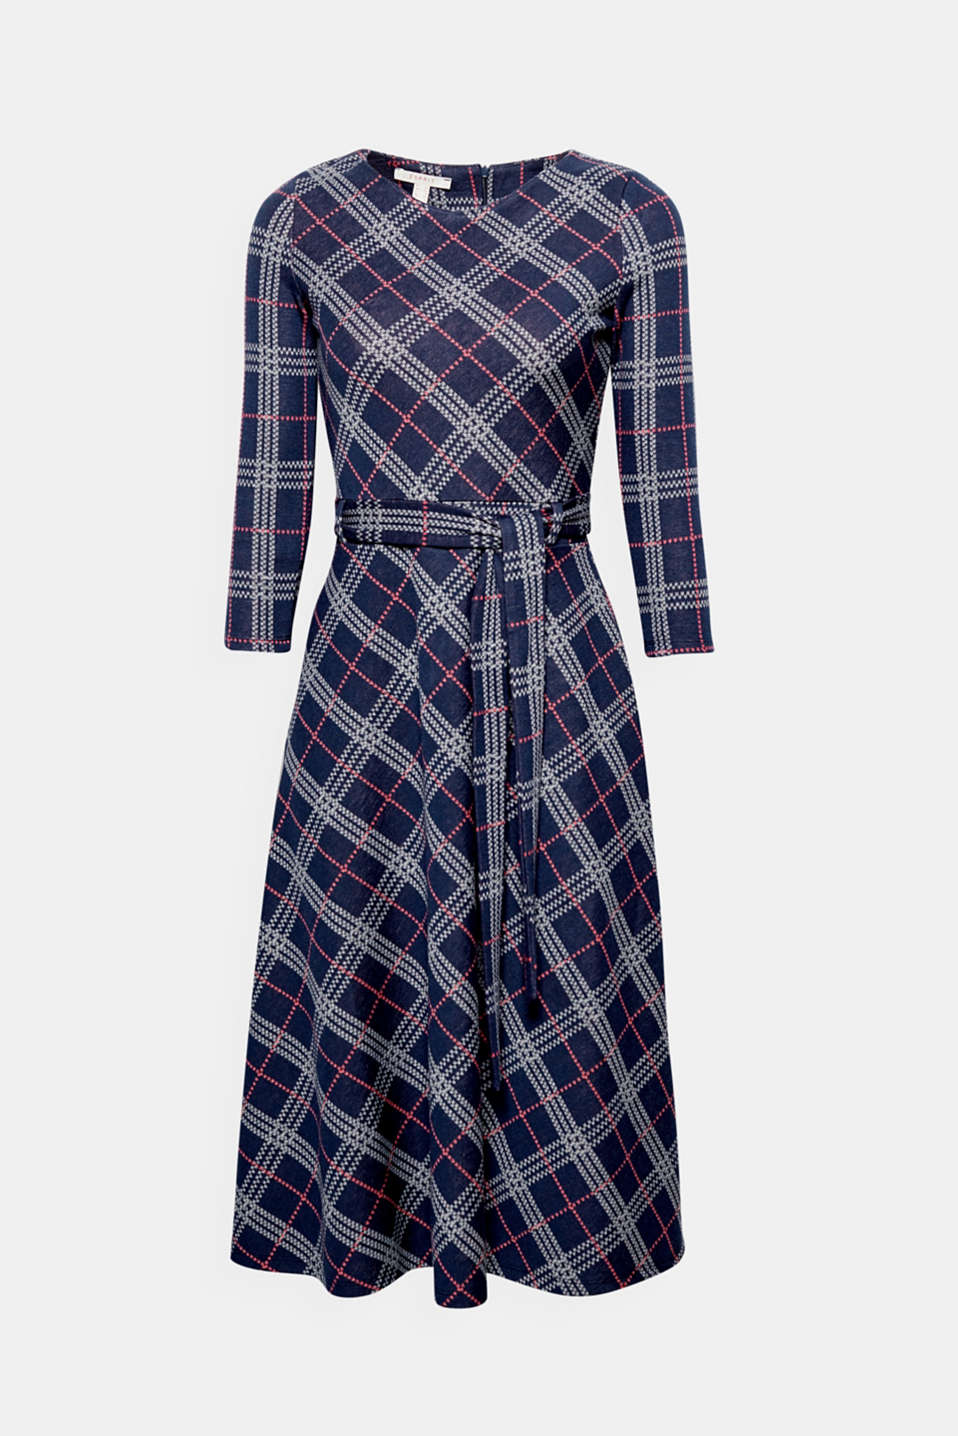 We love retro! This midi dress made of dense, soft jersey has an all-over checked pattern, a tie-around belt and a wide skirt!